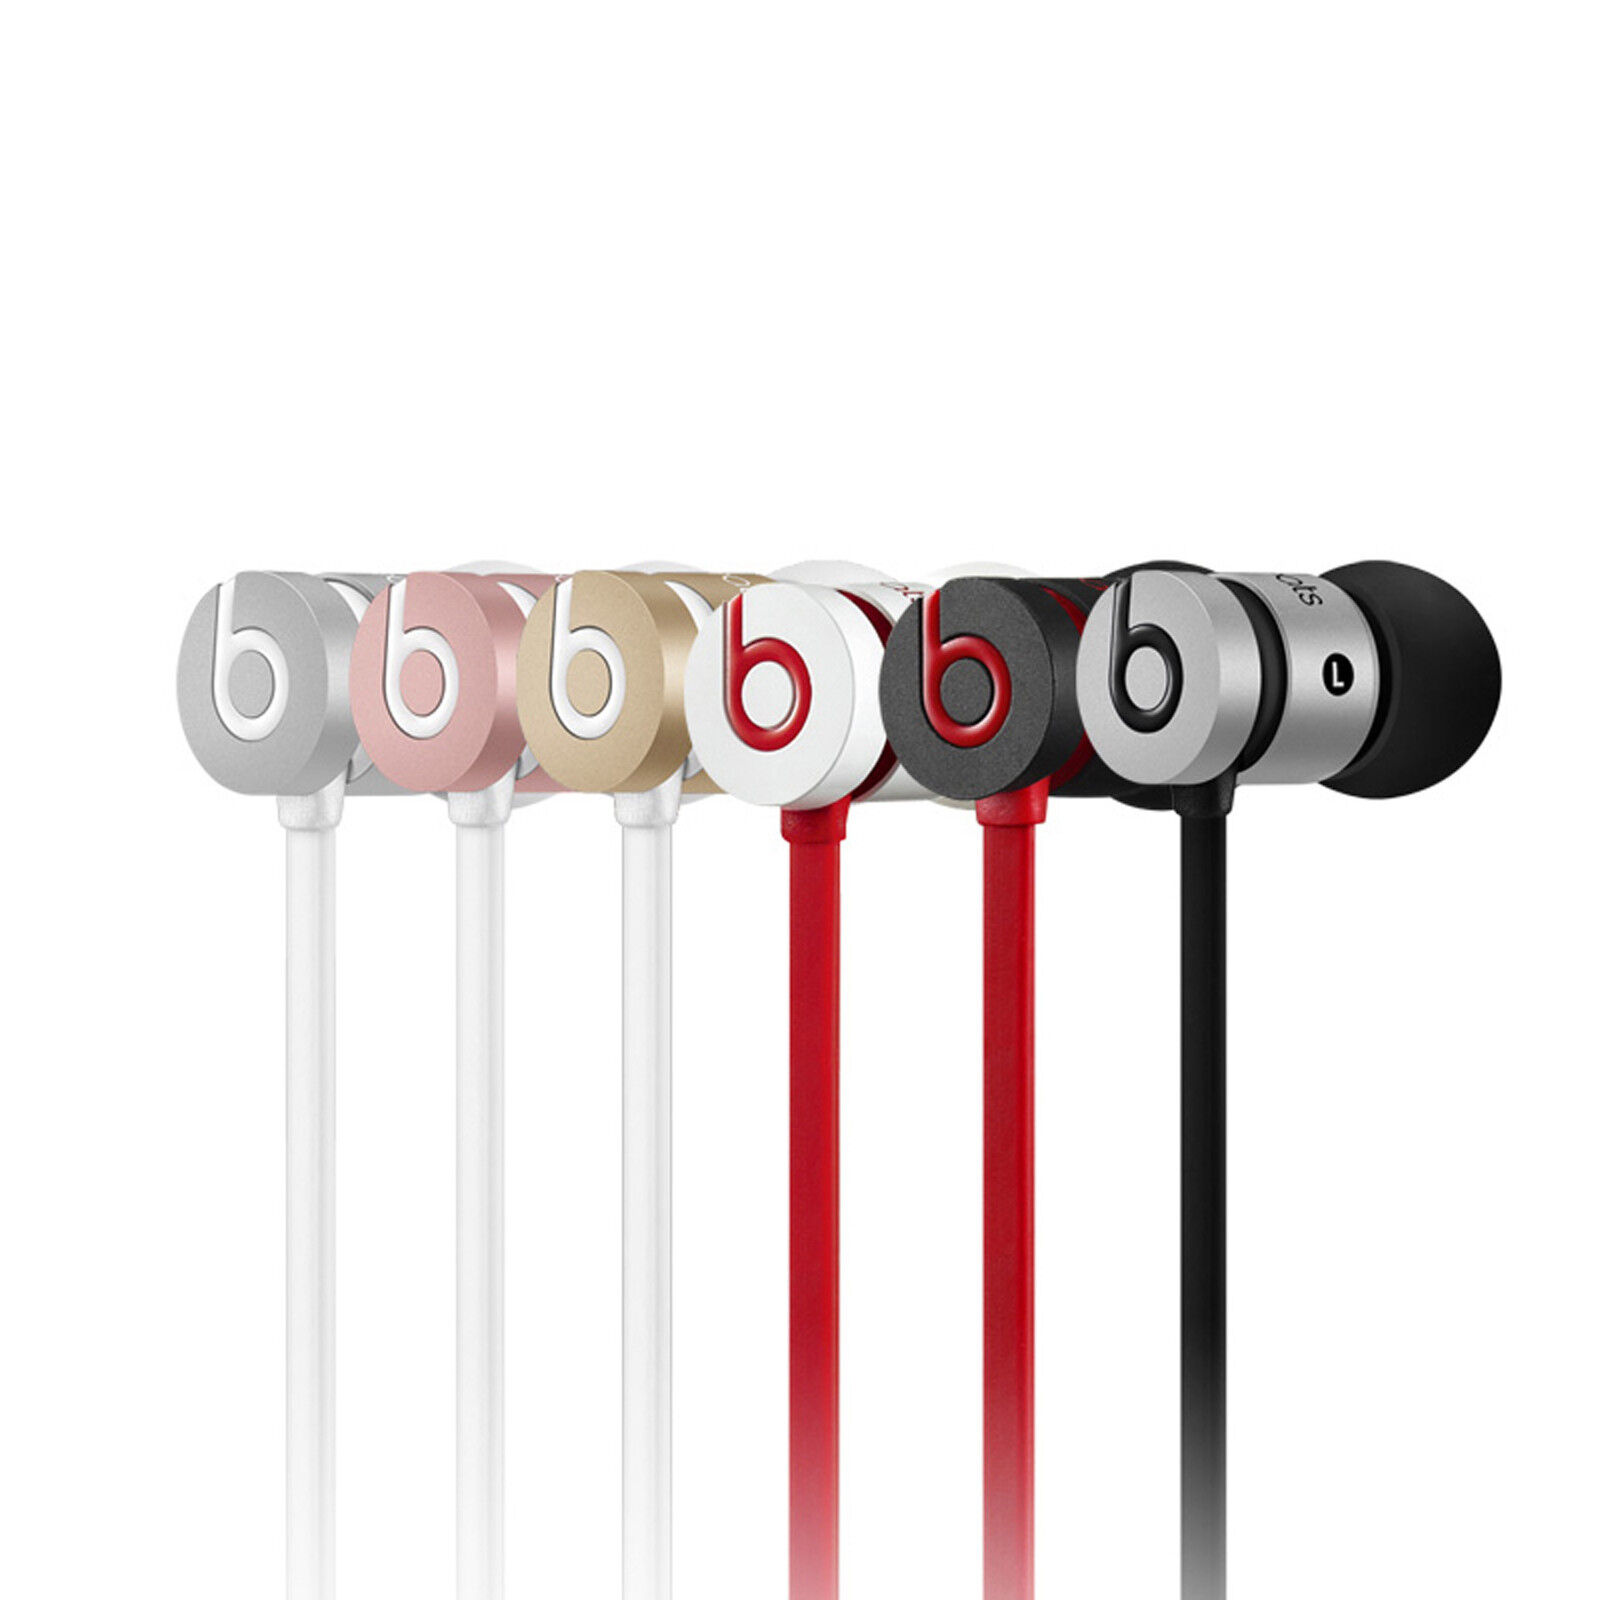 Headphones - Beats by Dr. Dre UrBeats 2.0 In-Ear Only Headphones with Pouch & Extra Ear Buds